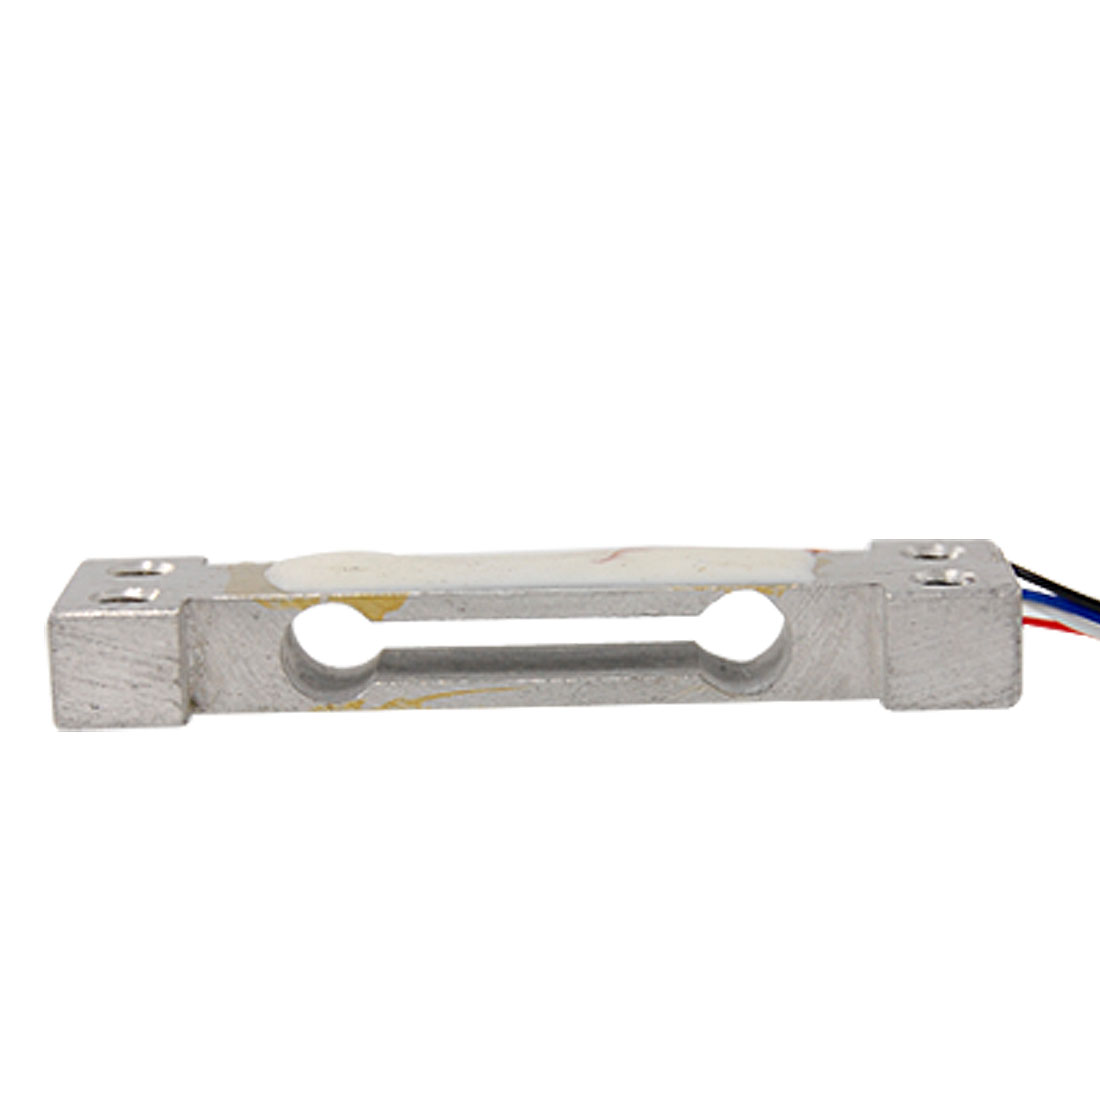 0-300g Weighing Load Cell Sensor for Electronic Balance